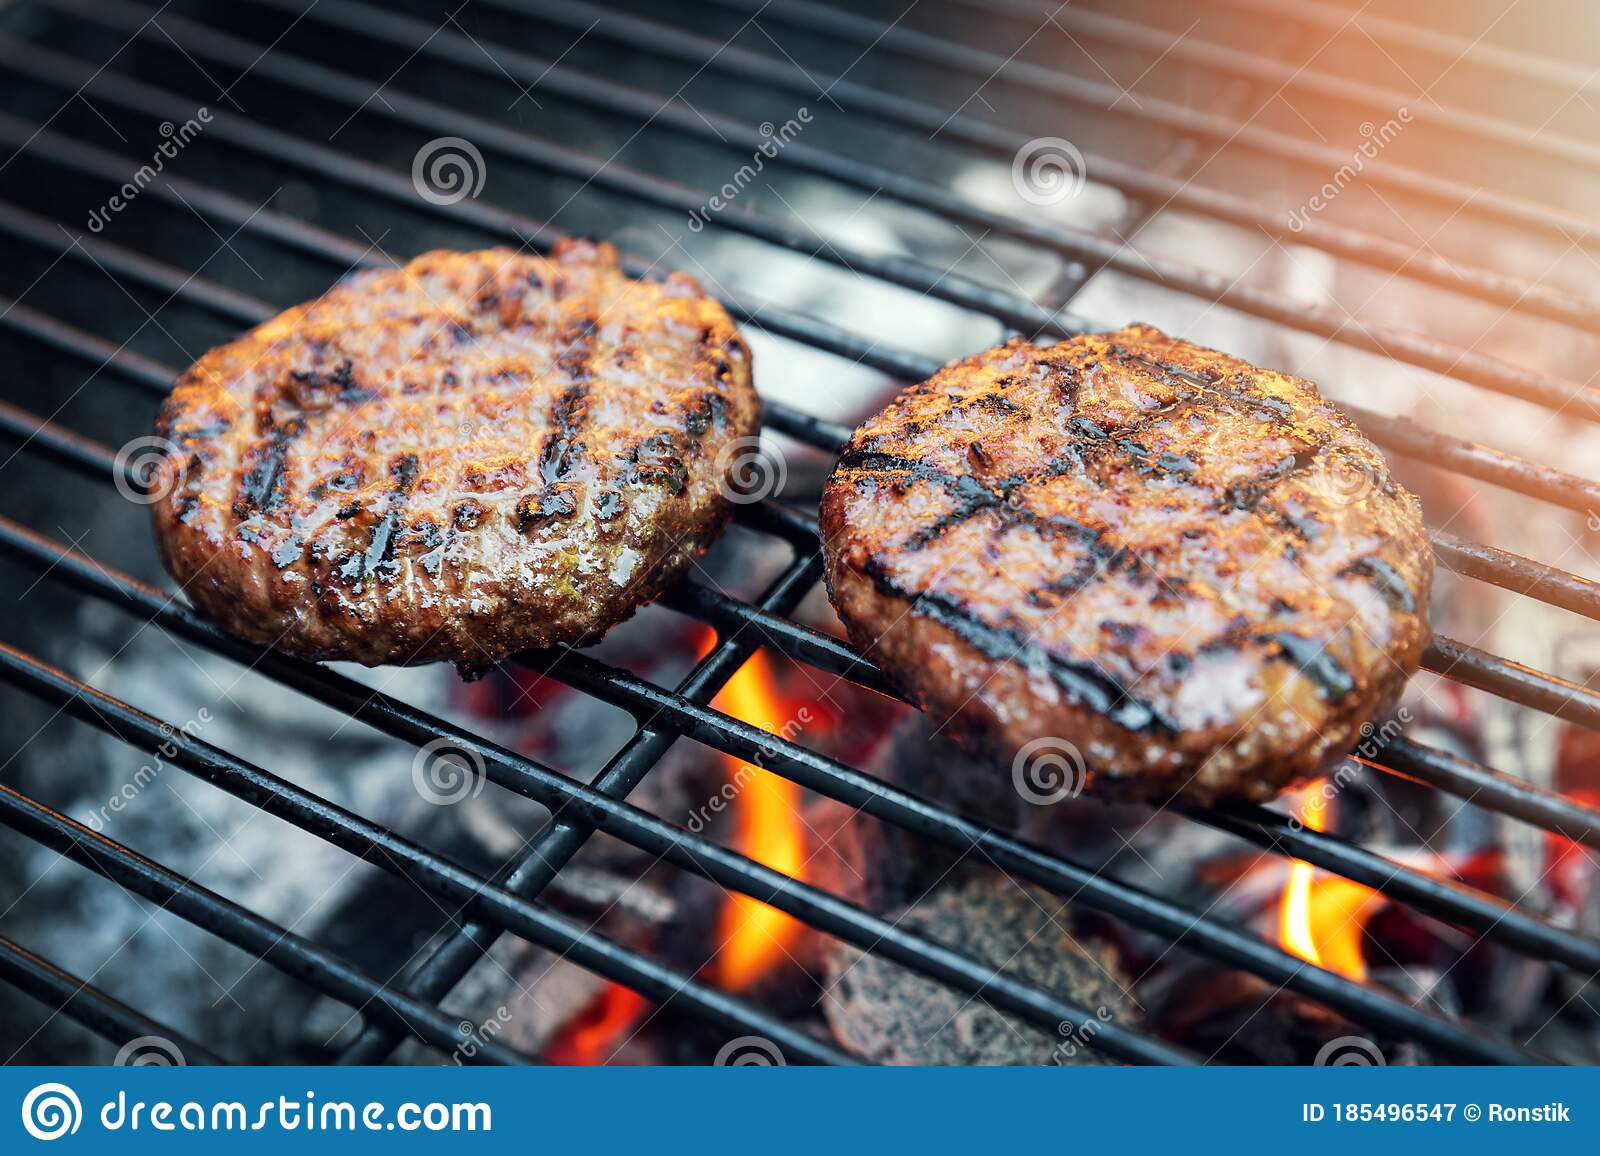 Beef Burger Meat Cooking On Charcoal Grill Stock Image Image Of Meat Flame 185496547